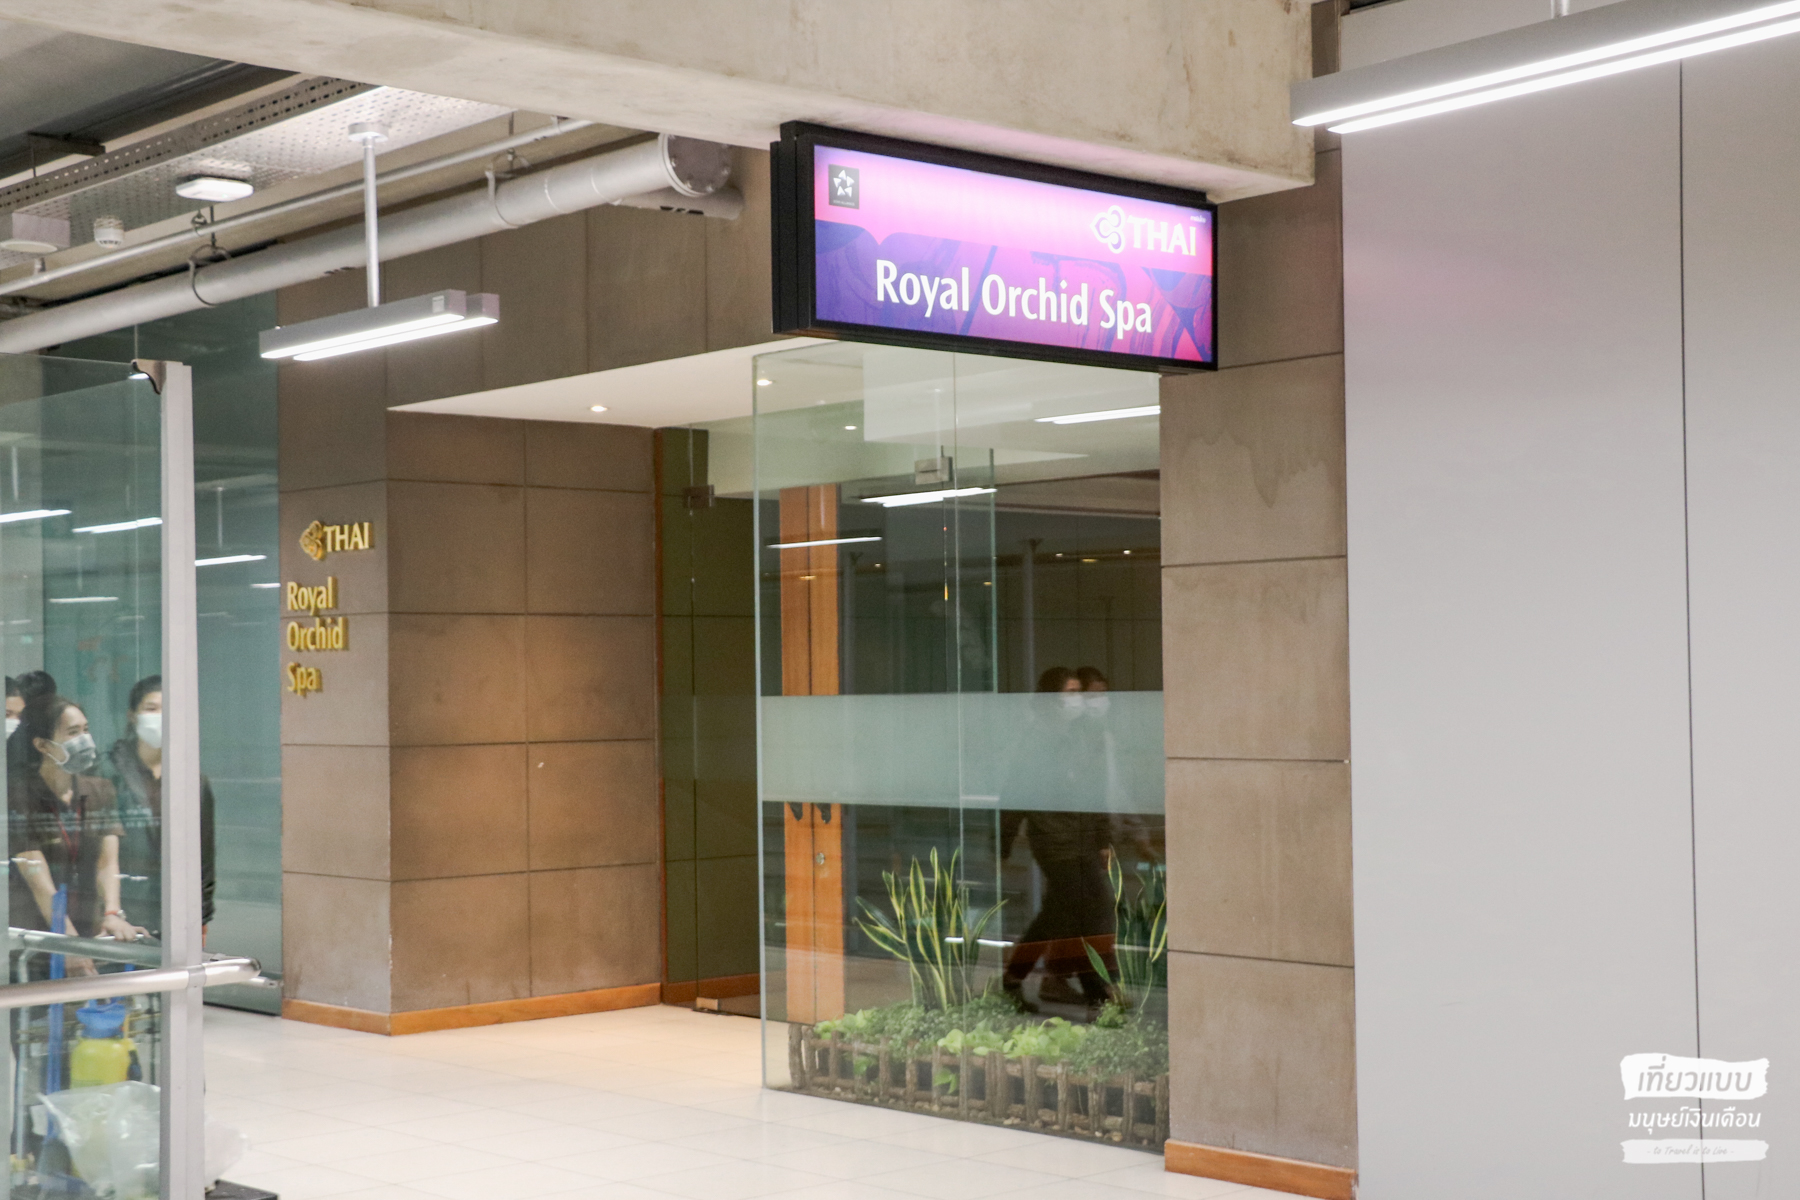 Royal Orchid Spa